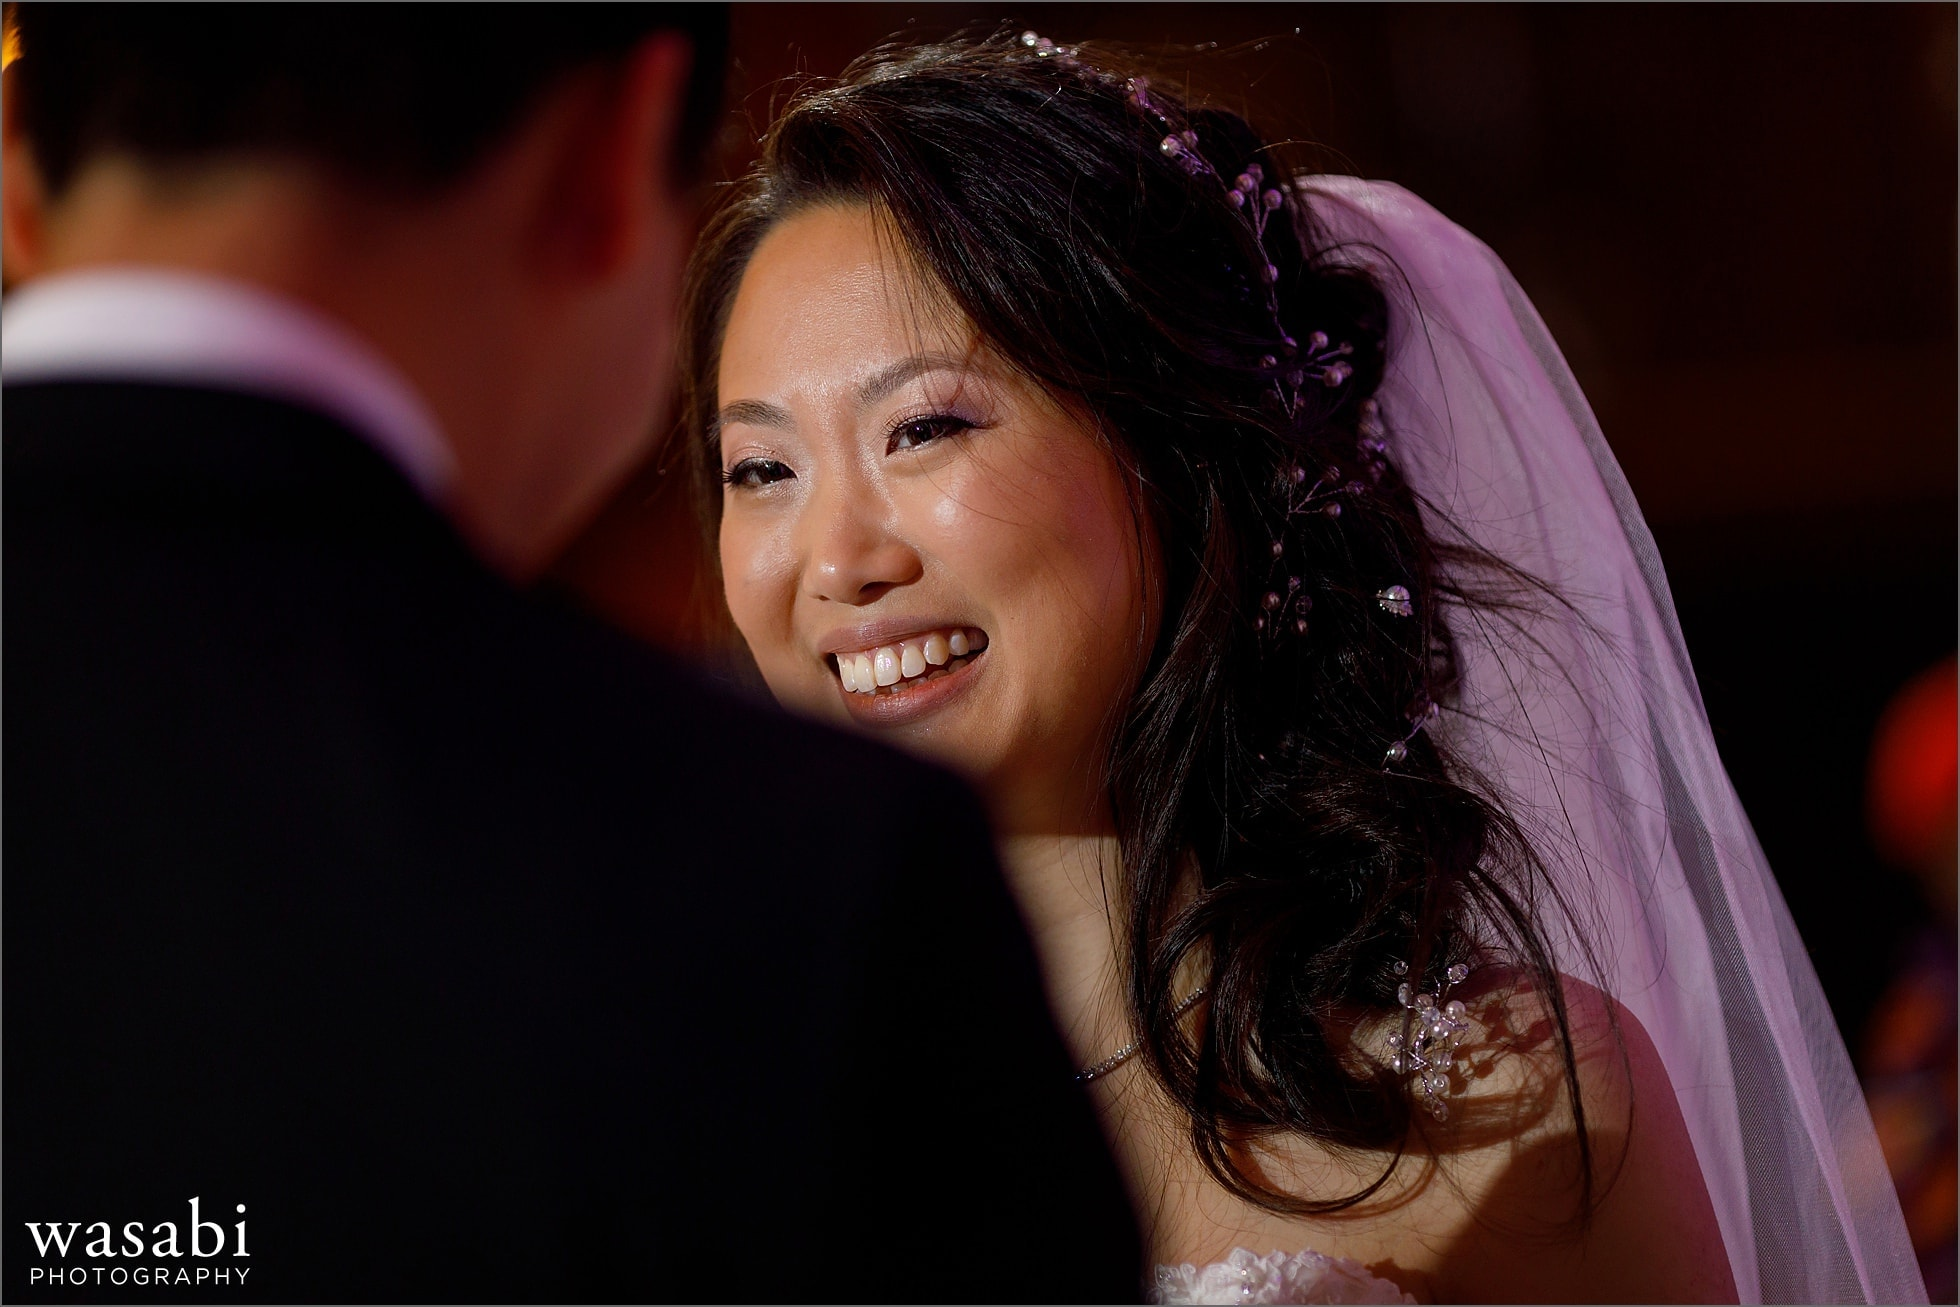 Closeup of bride smiling during wedding ceremony